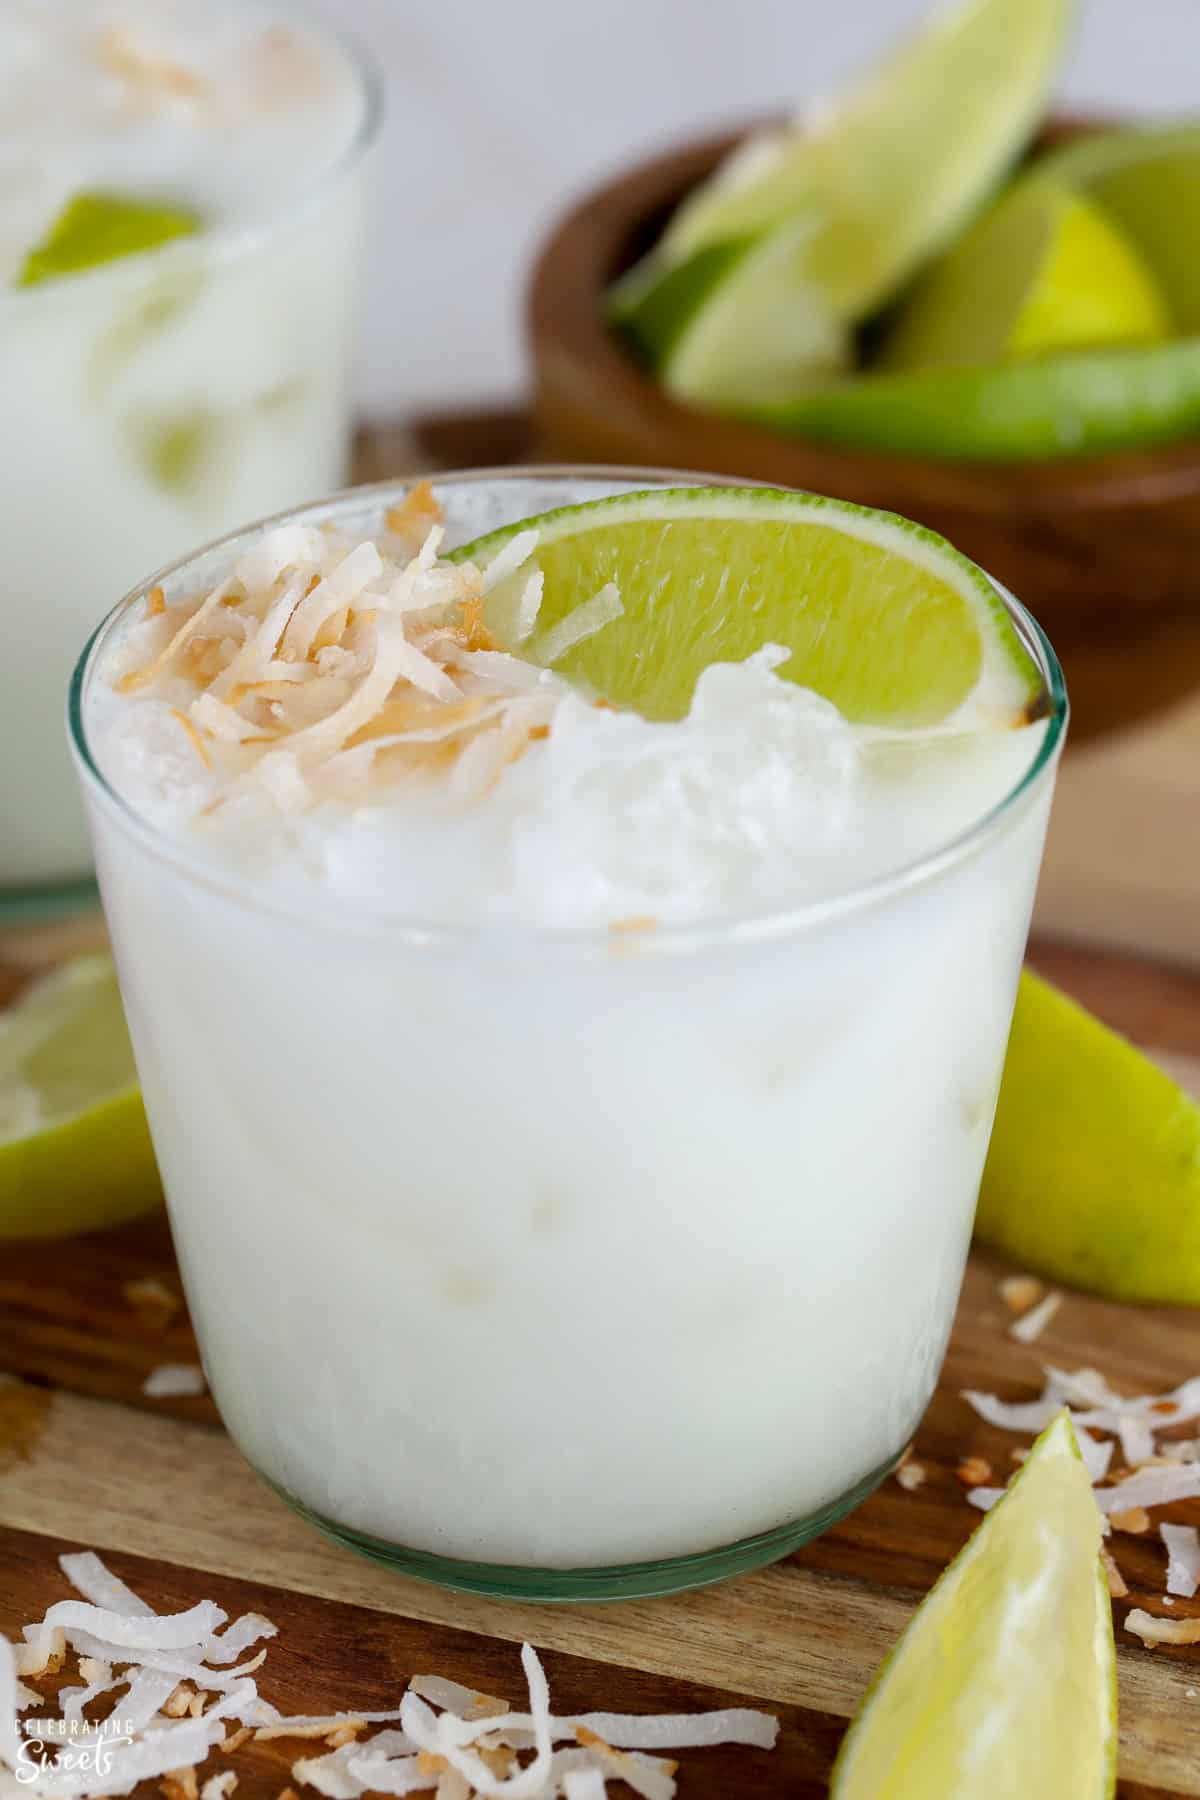 Closeup of a coconut margarita in a glass garnished with toasted coconut and lime